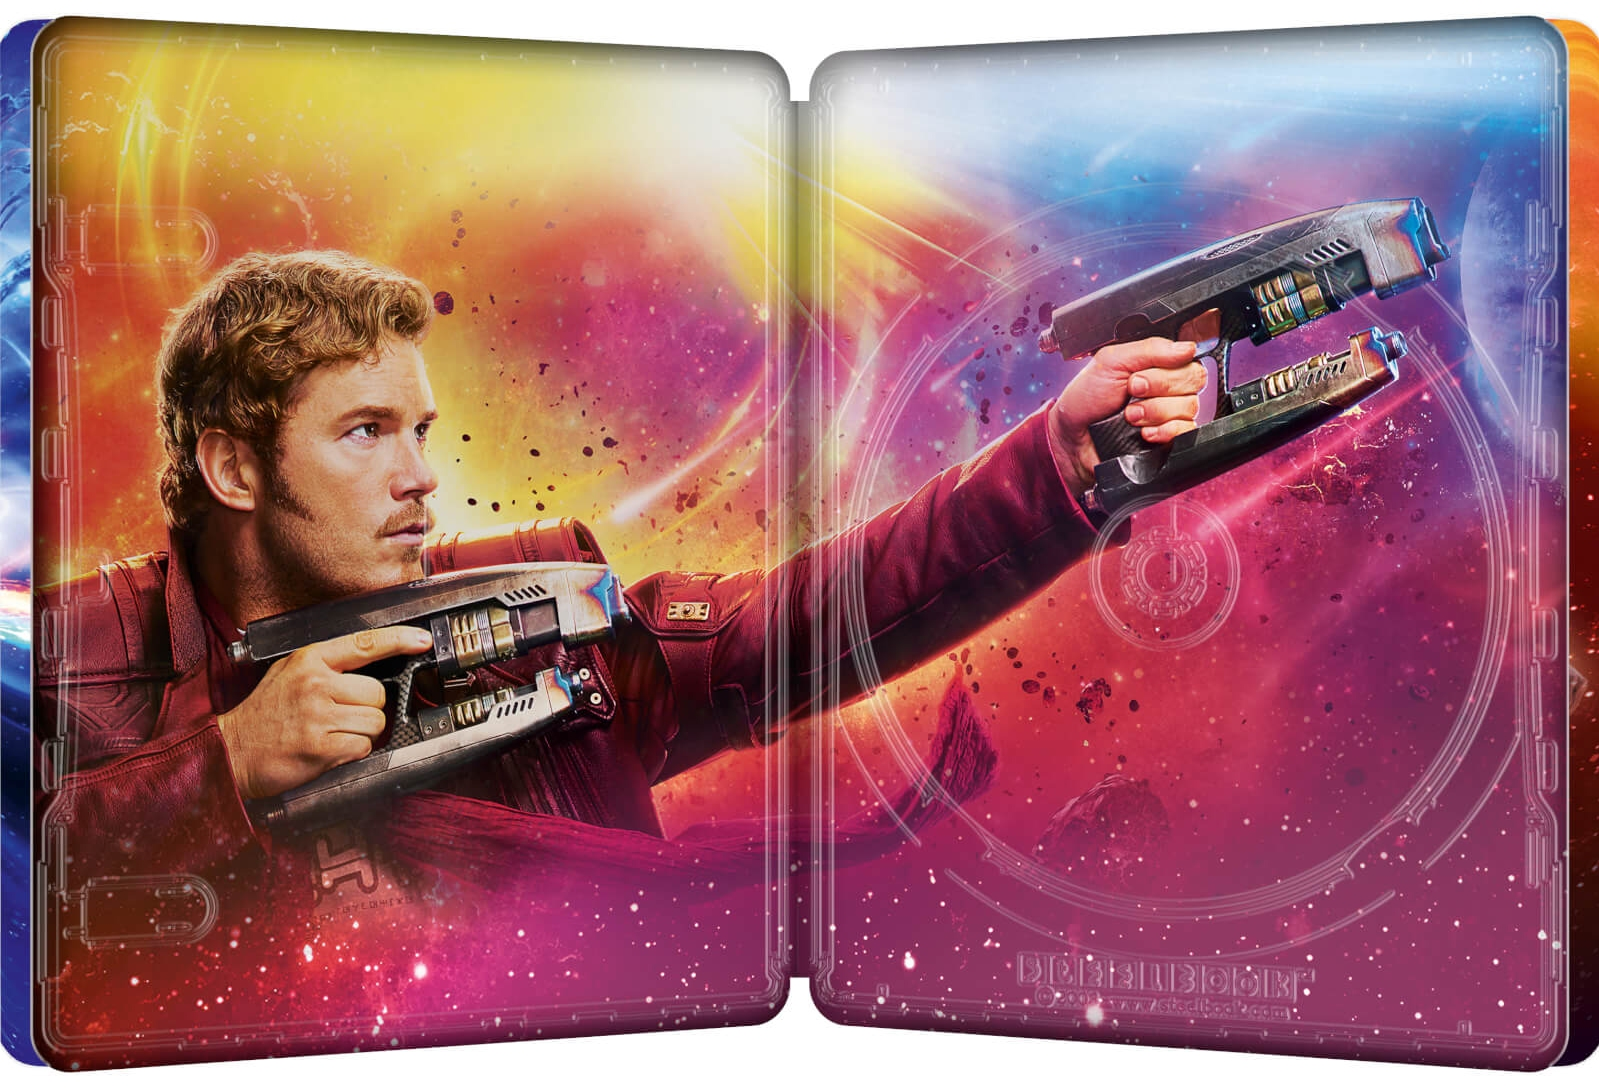 Guardians of the Galaxy Vol. 2 SteelBook inside